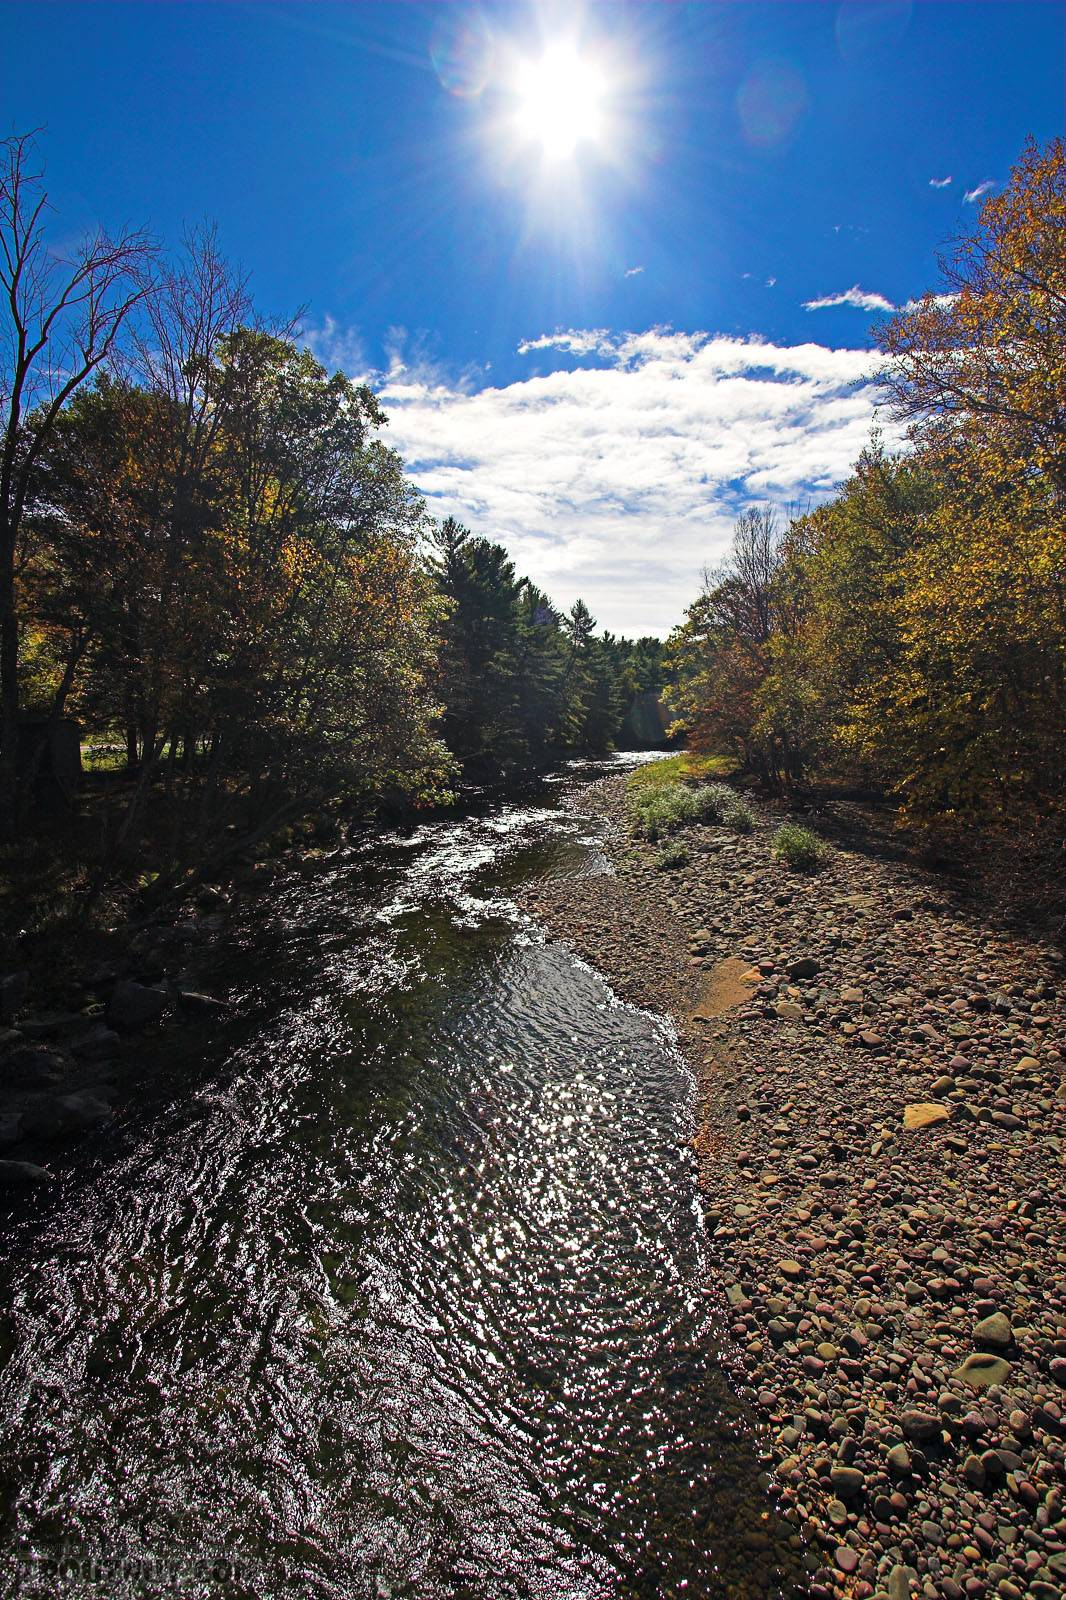 From the West Branch of the Neversink River in New York.